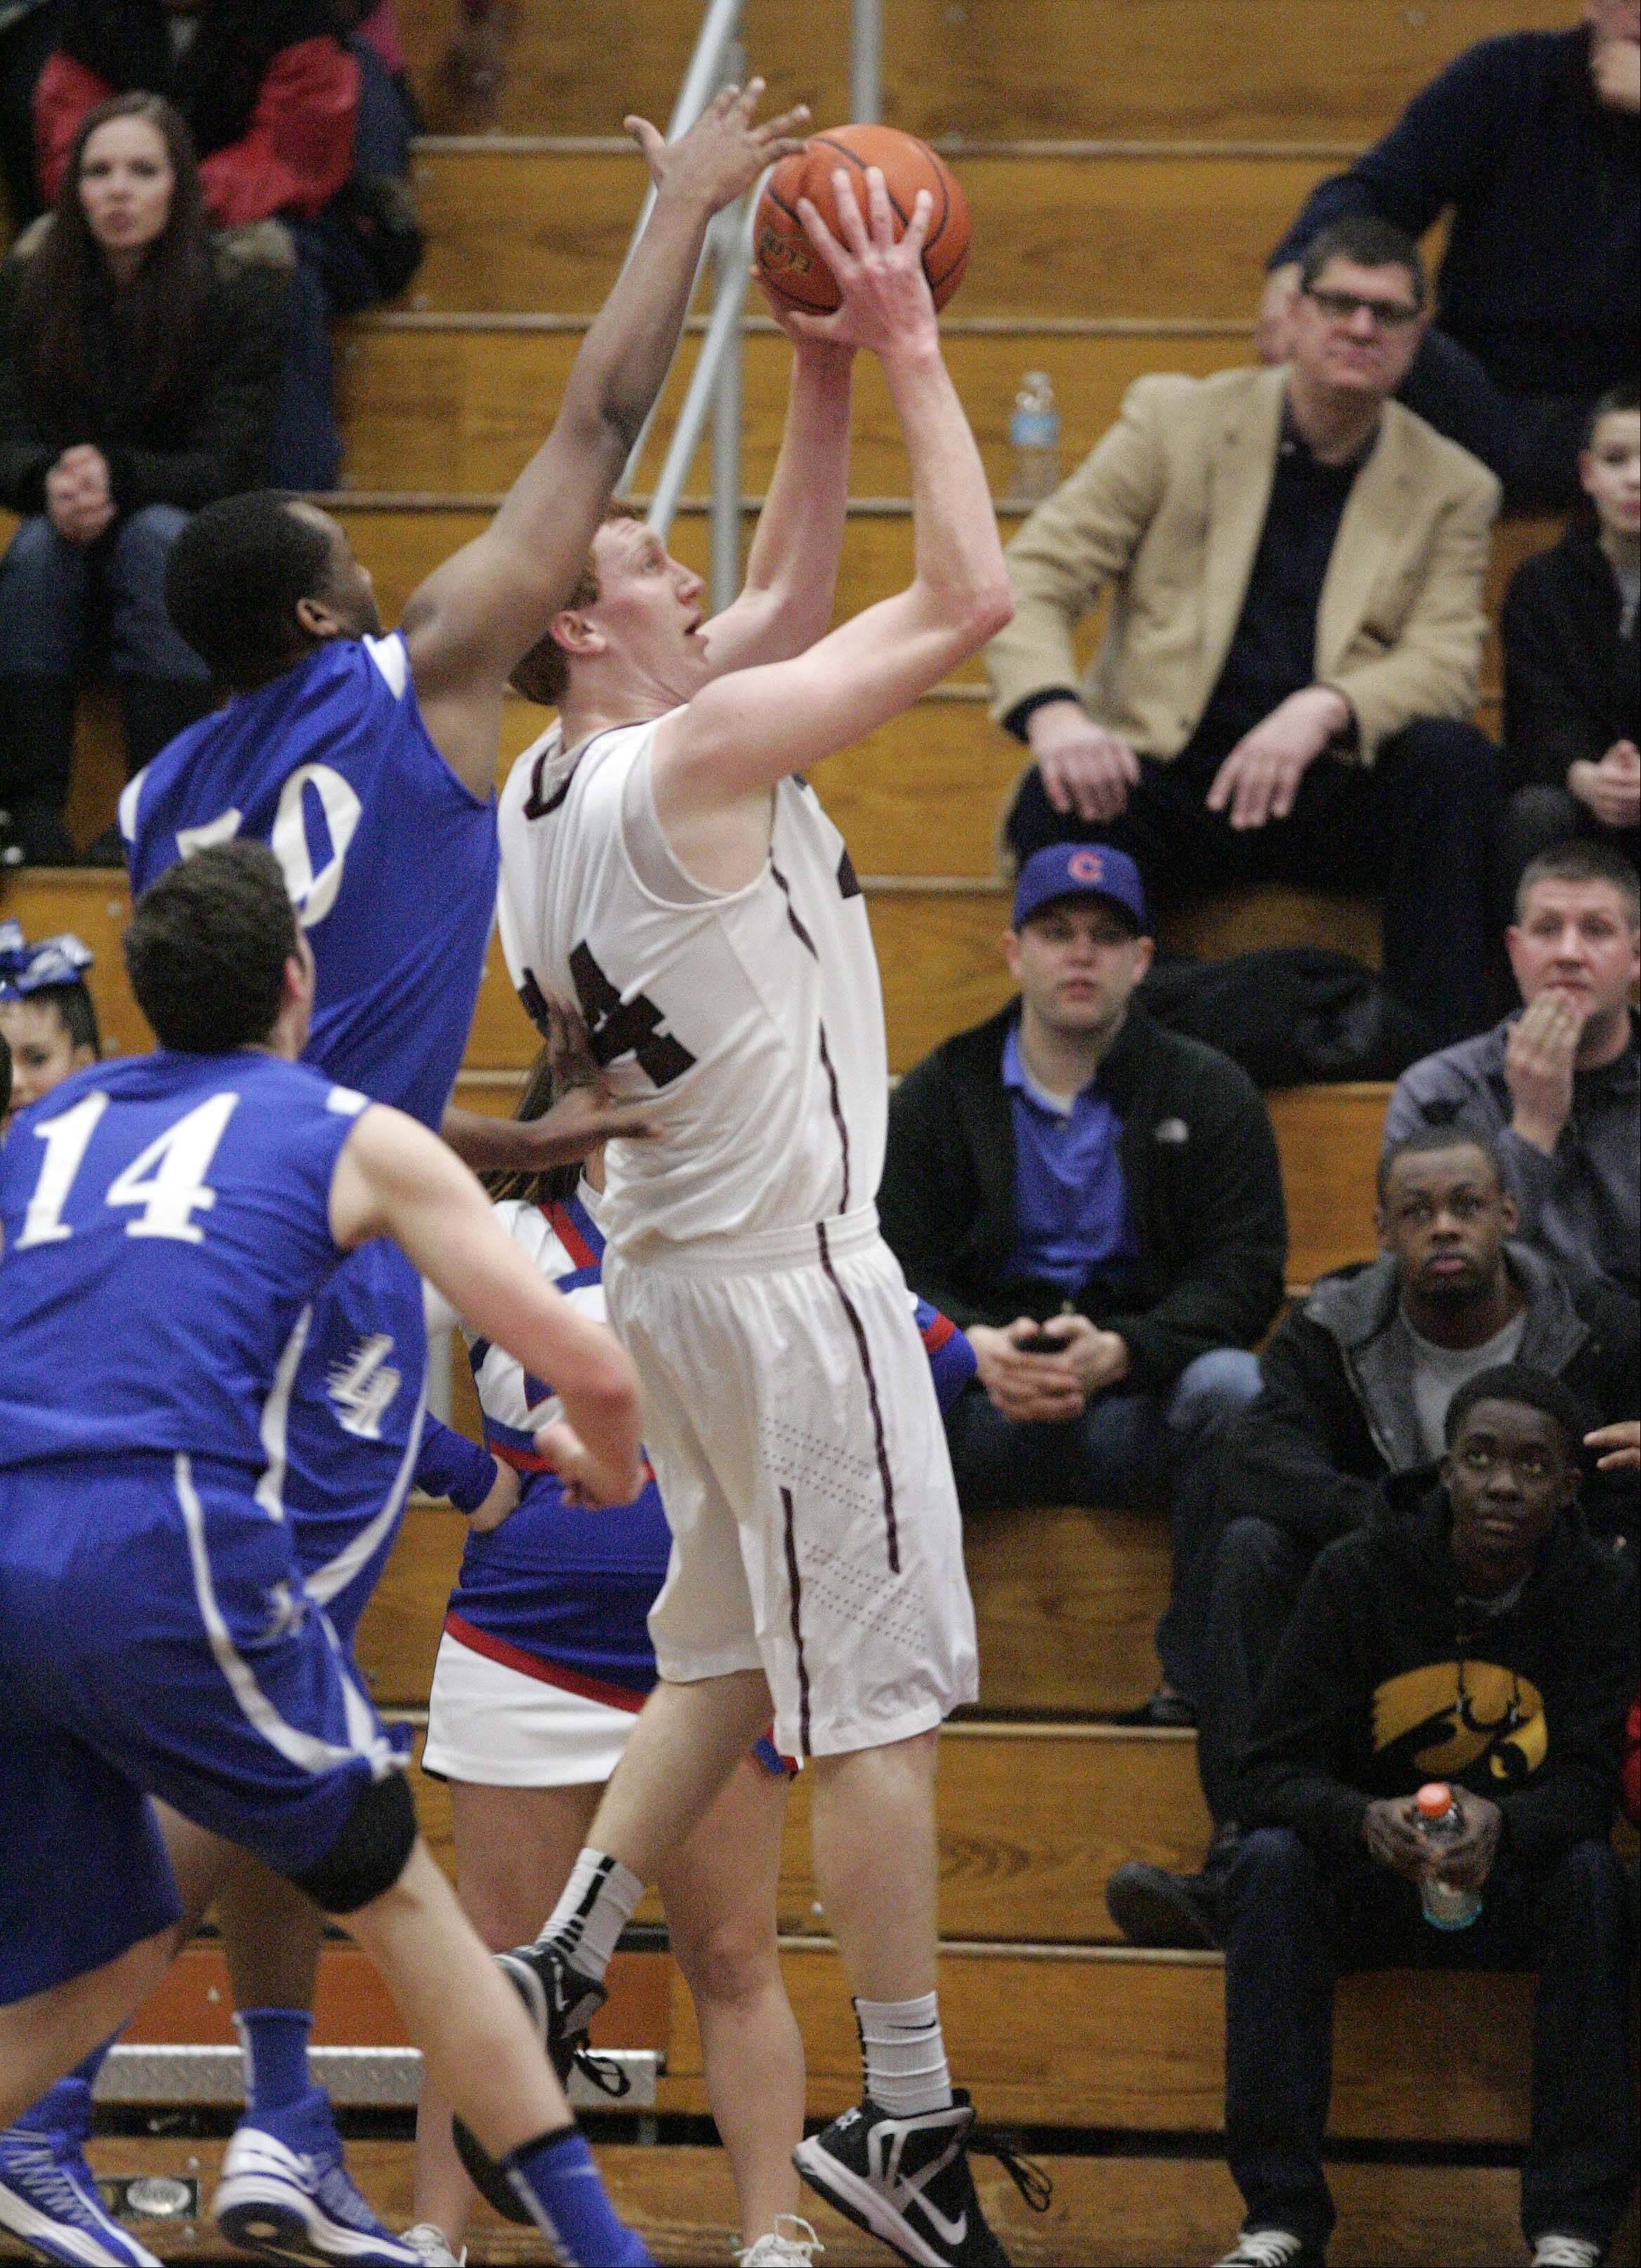 Larkin's Daniel McFadden tries to get a hand on Elgin post Eric Sedlack's shot.